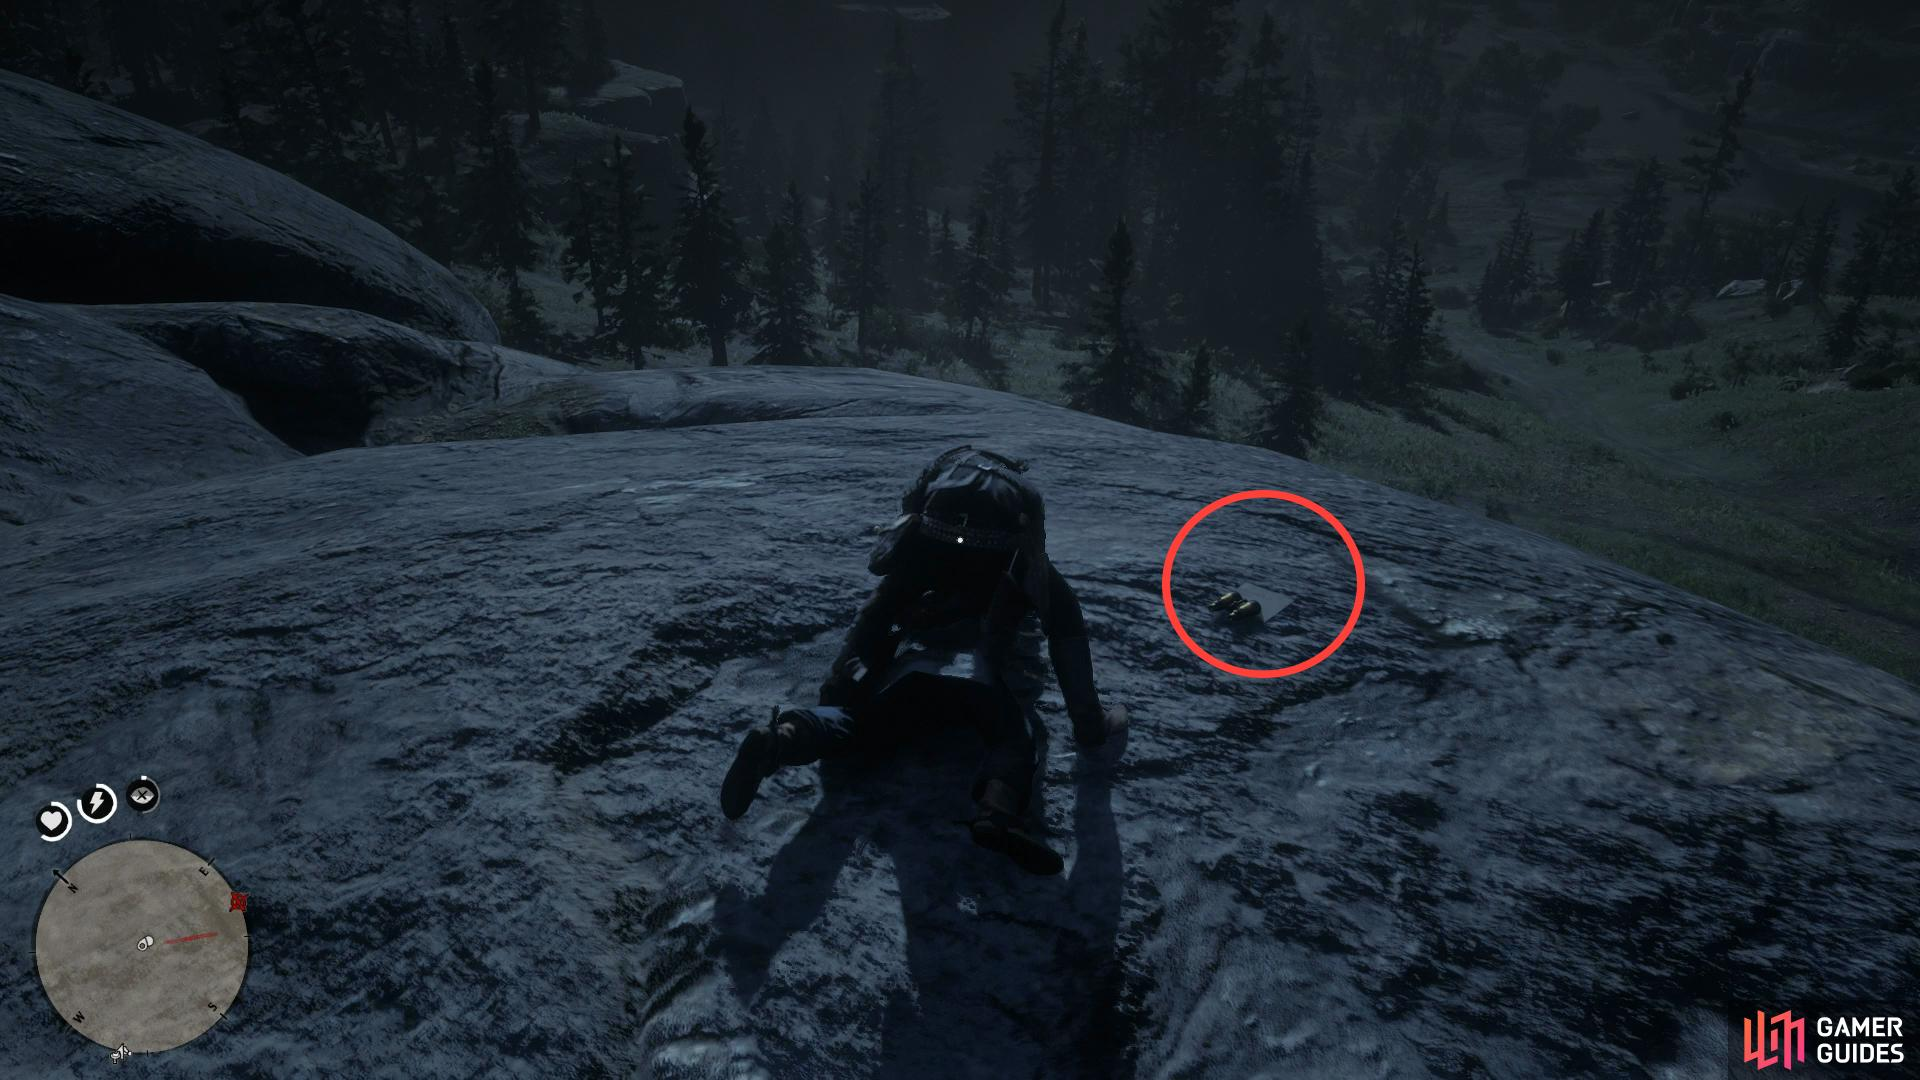 the map can be found on the ground next to him.